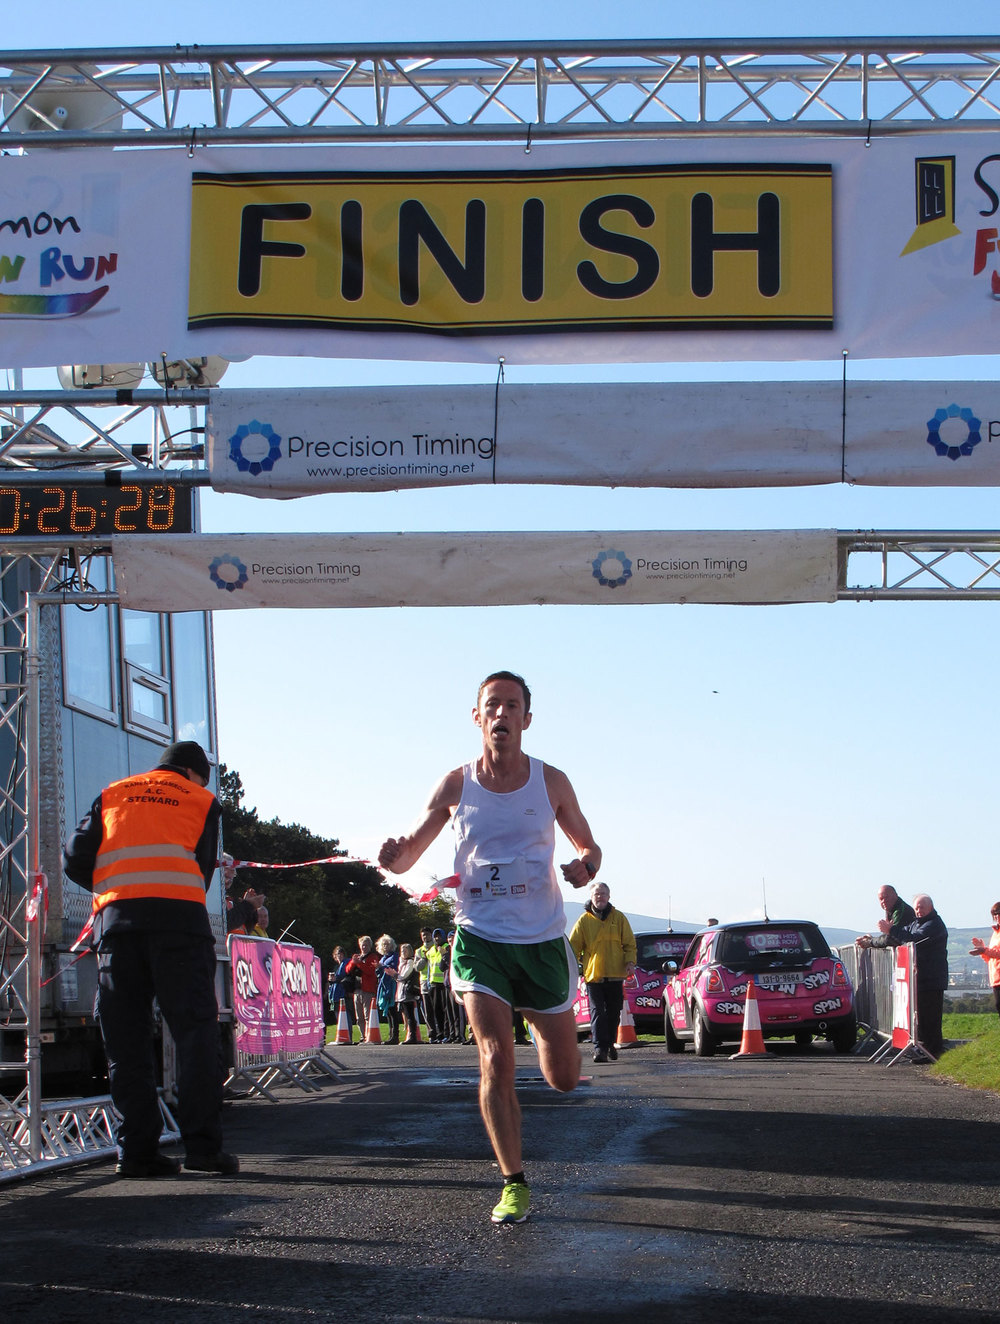 however he couldn't keep up and victory went to Raheny Shamrocks' Brian Leahy, completing the 5 mile run in a time of 26:28.